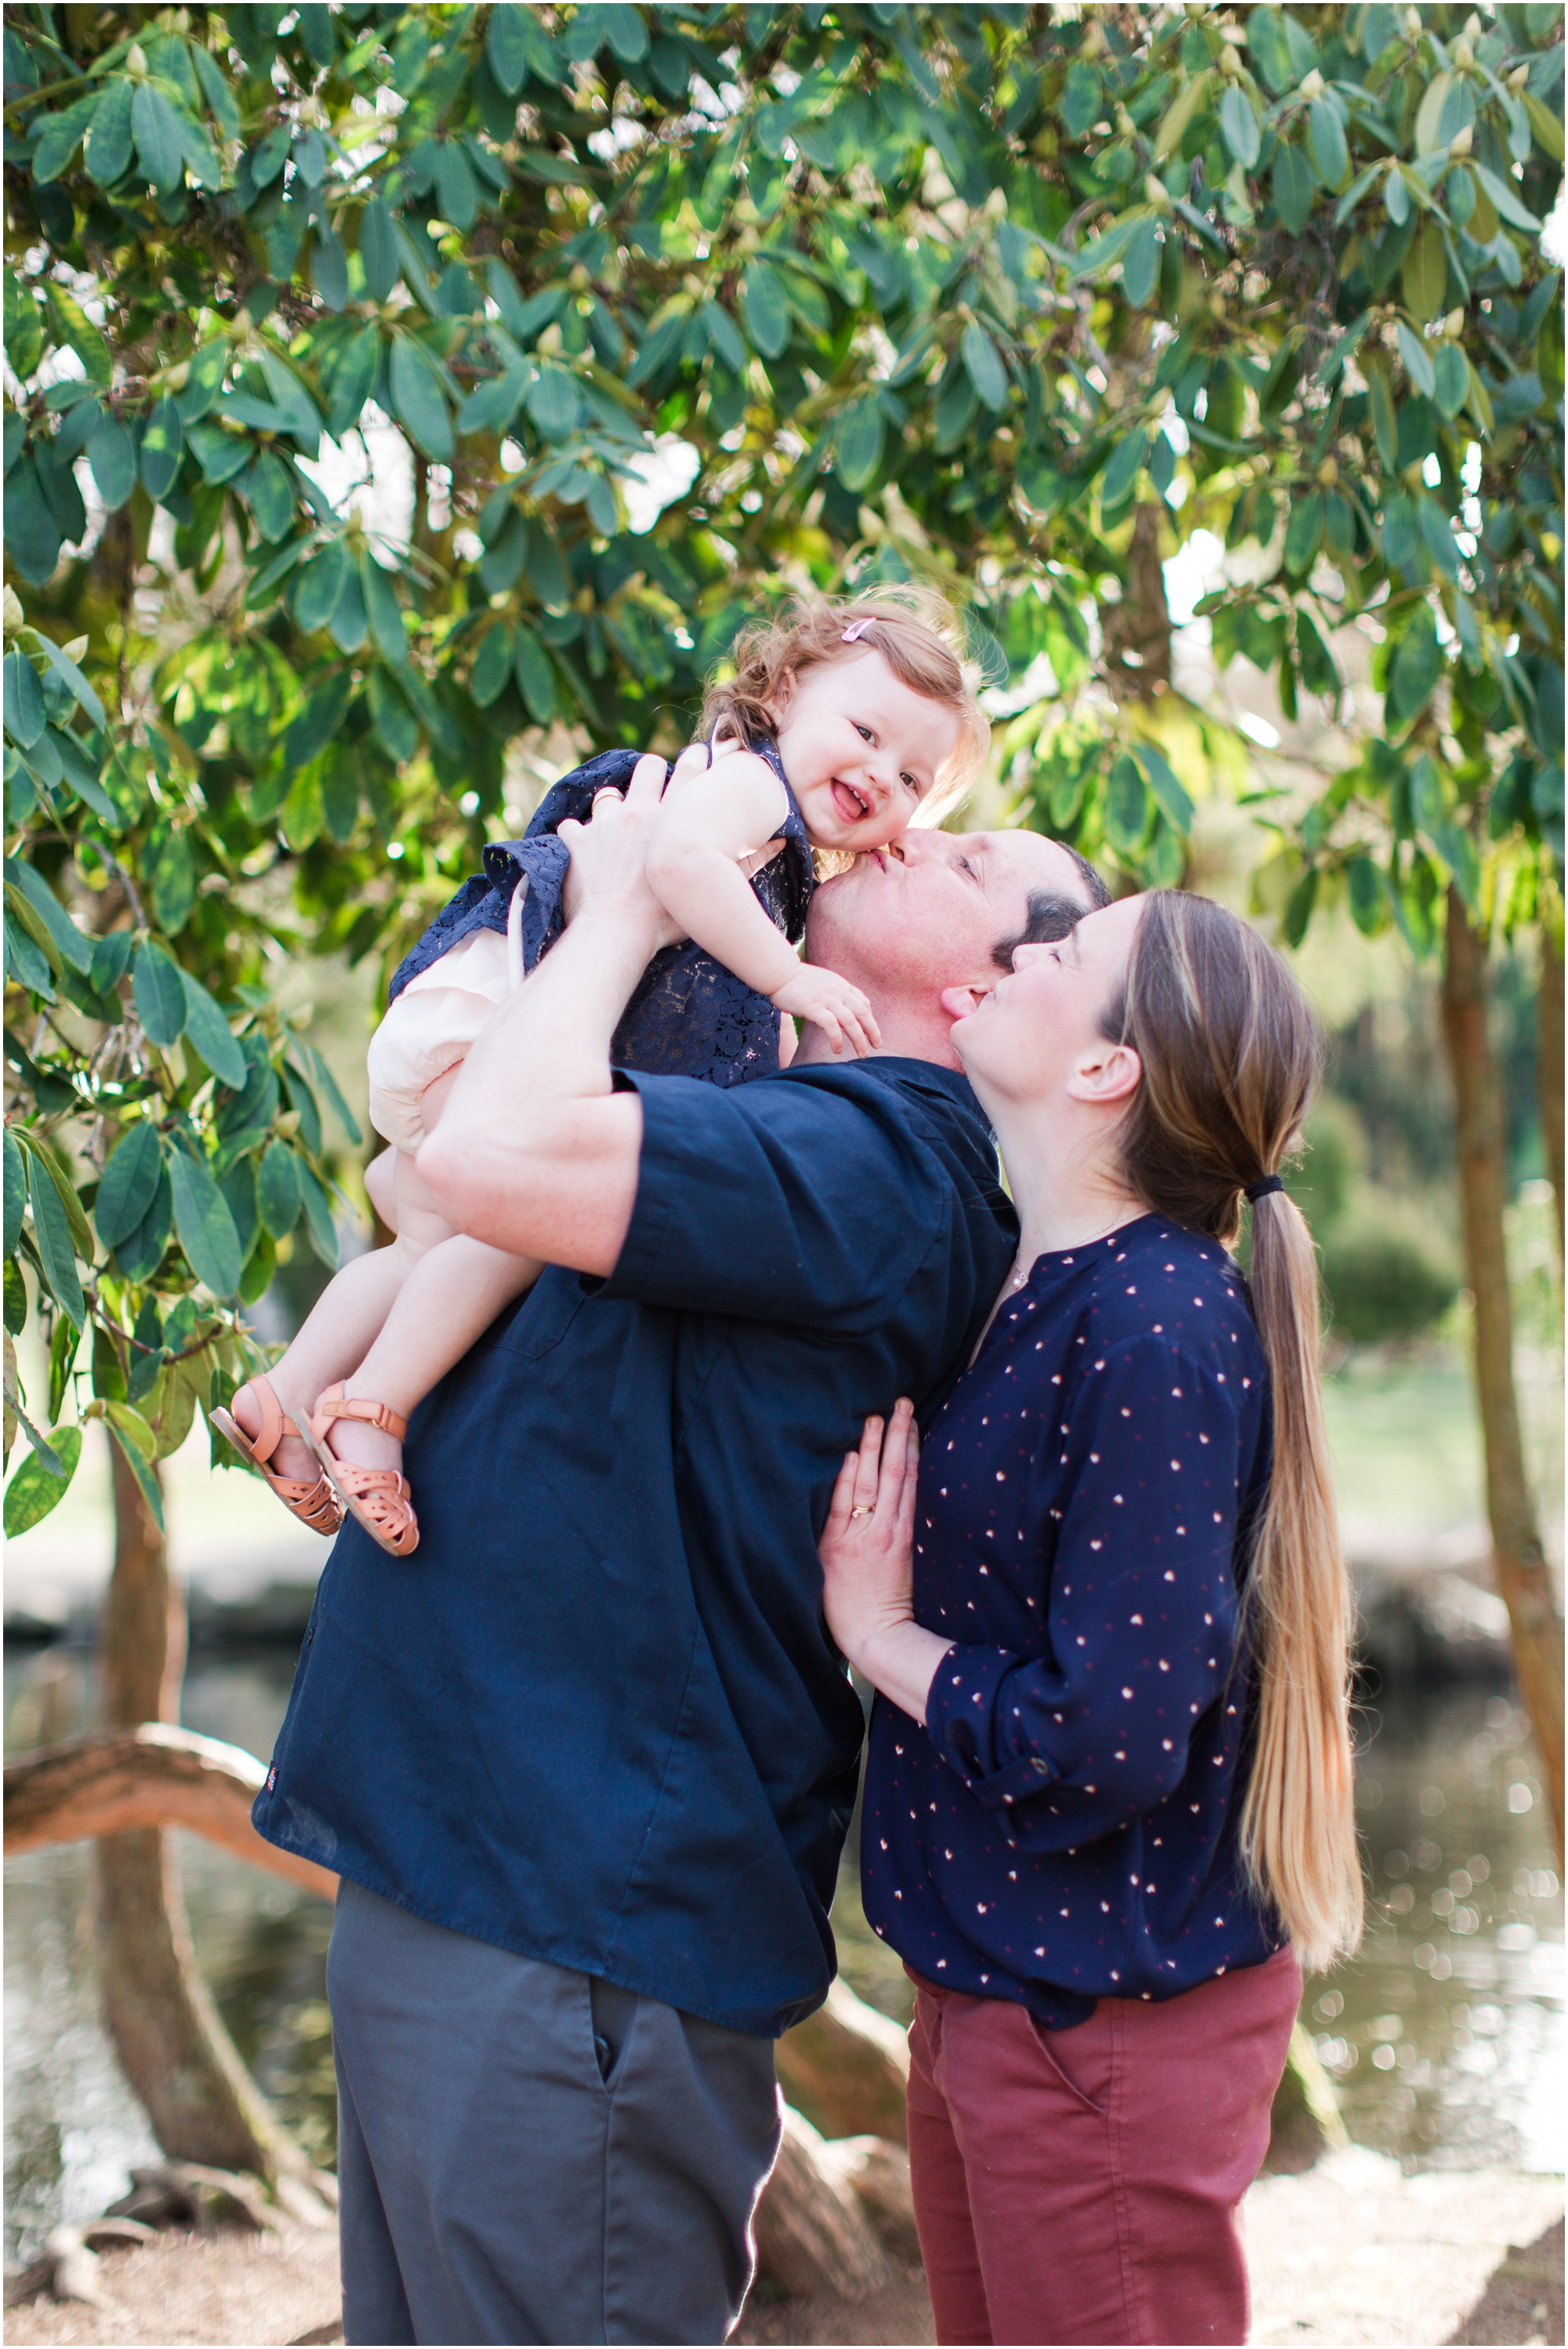 Family portraits at Point Defiance Park. Photos by Briana Calderon Photography based in the Greater Seattle & Tacoma, WA_1093.jpg